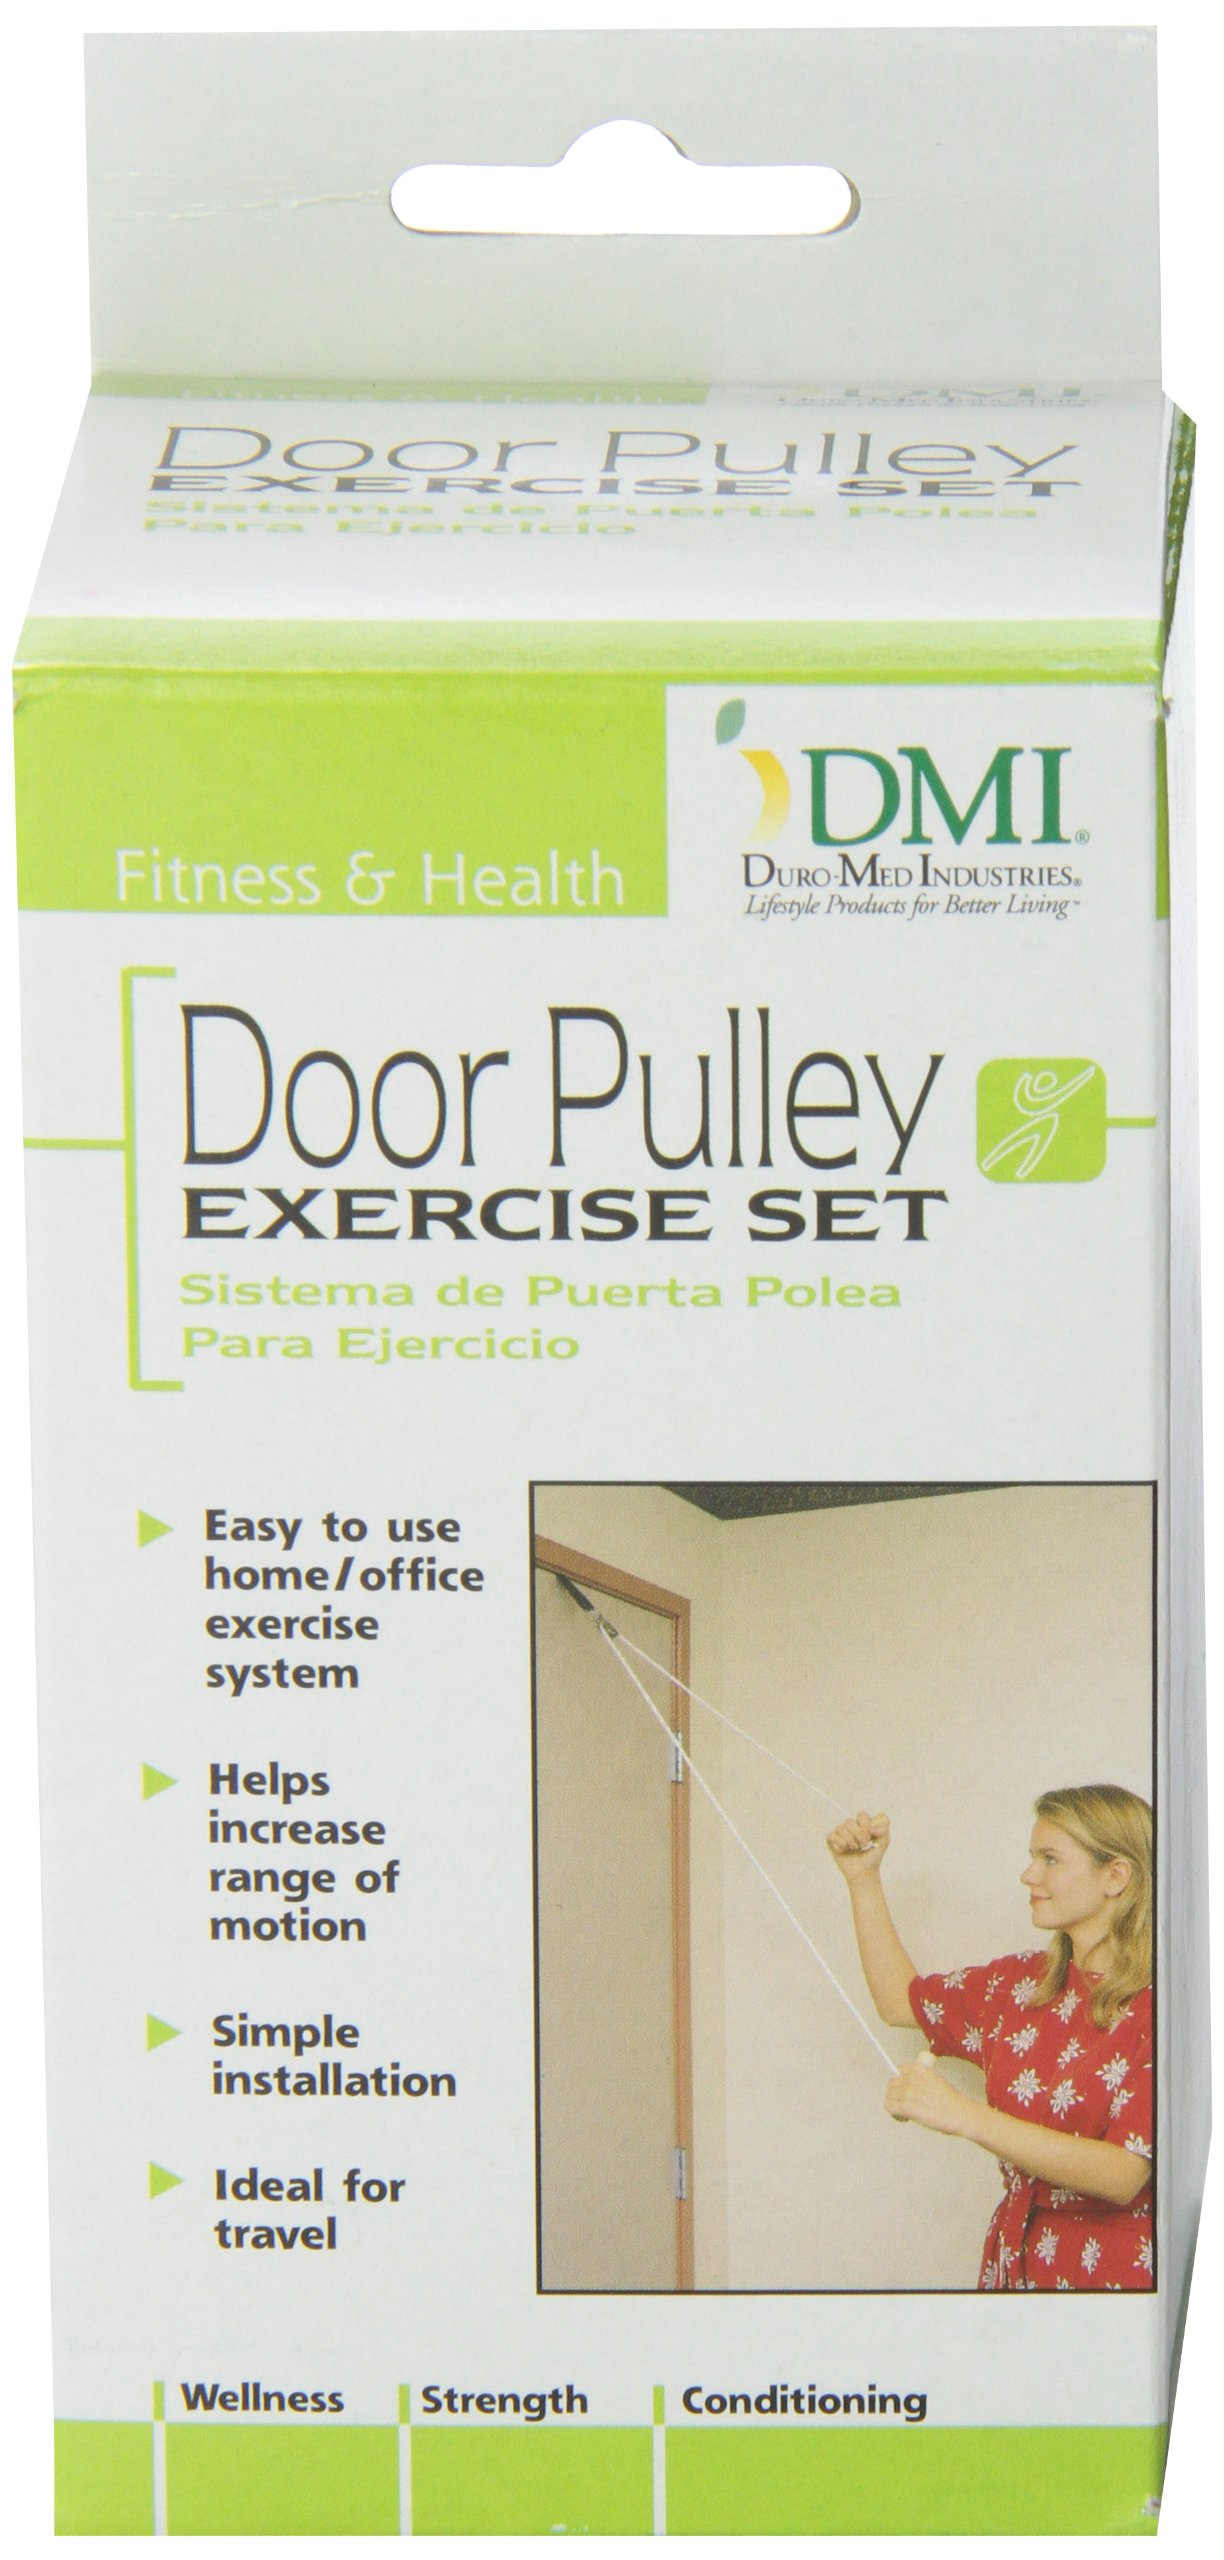 DMI Shoulder Pulley For Physical Therapy, Door Pulley Exerciser, White by Duro-Med (Image #8)